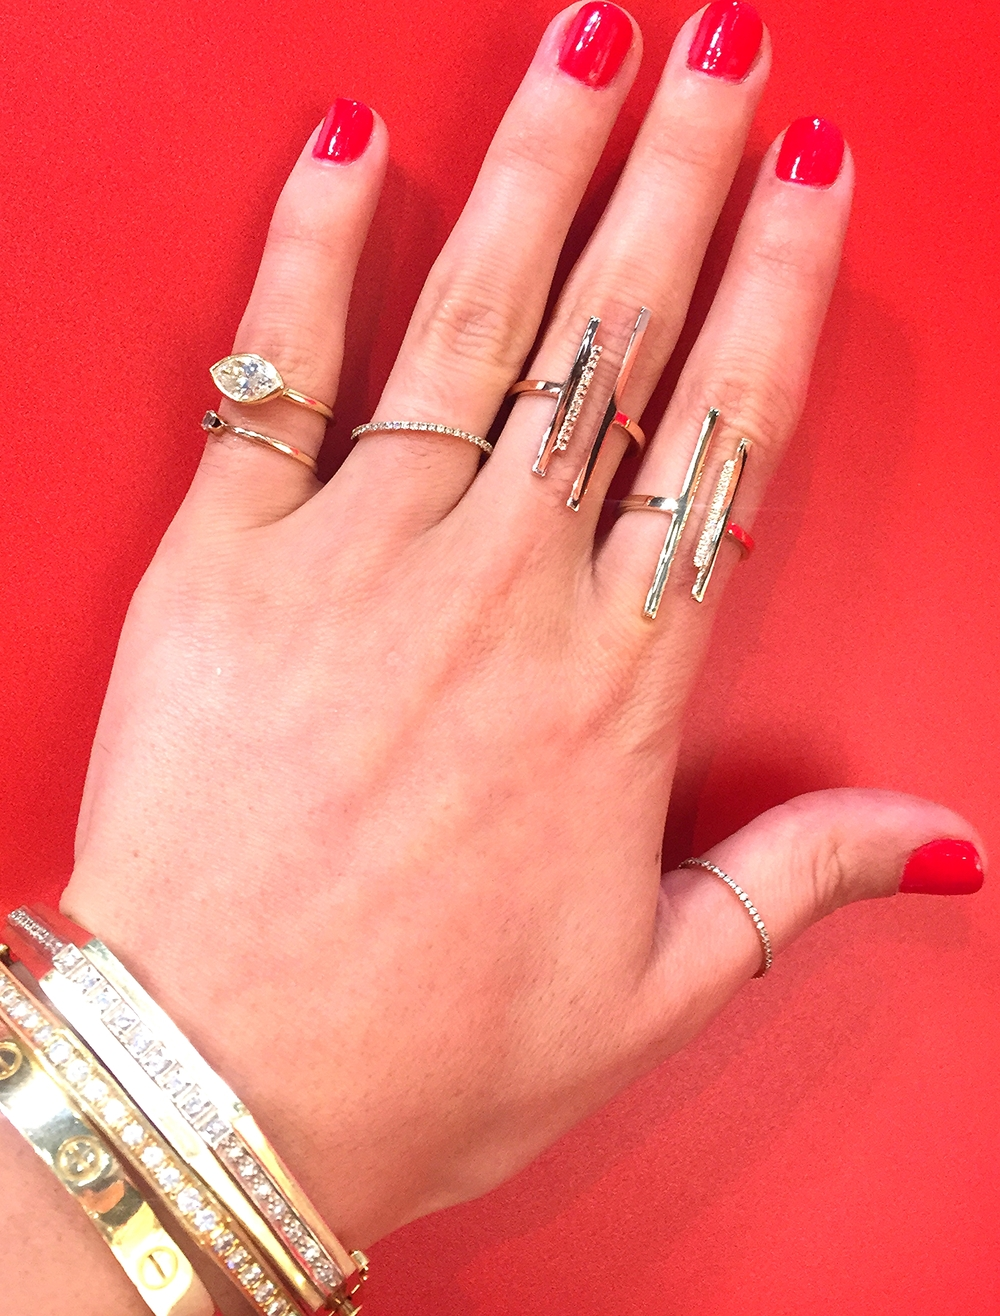 Pointer and middle finger gold and diamond open bar rings by Lauren Chisholm.